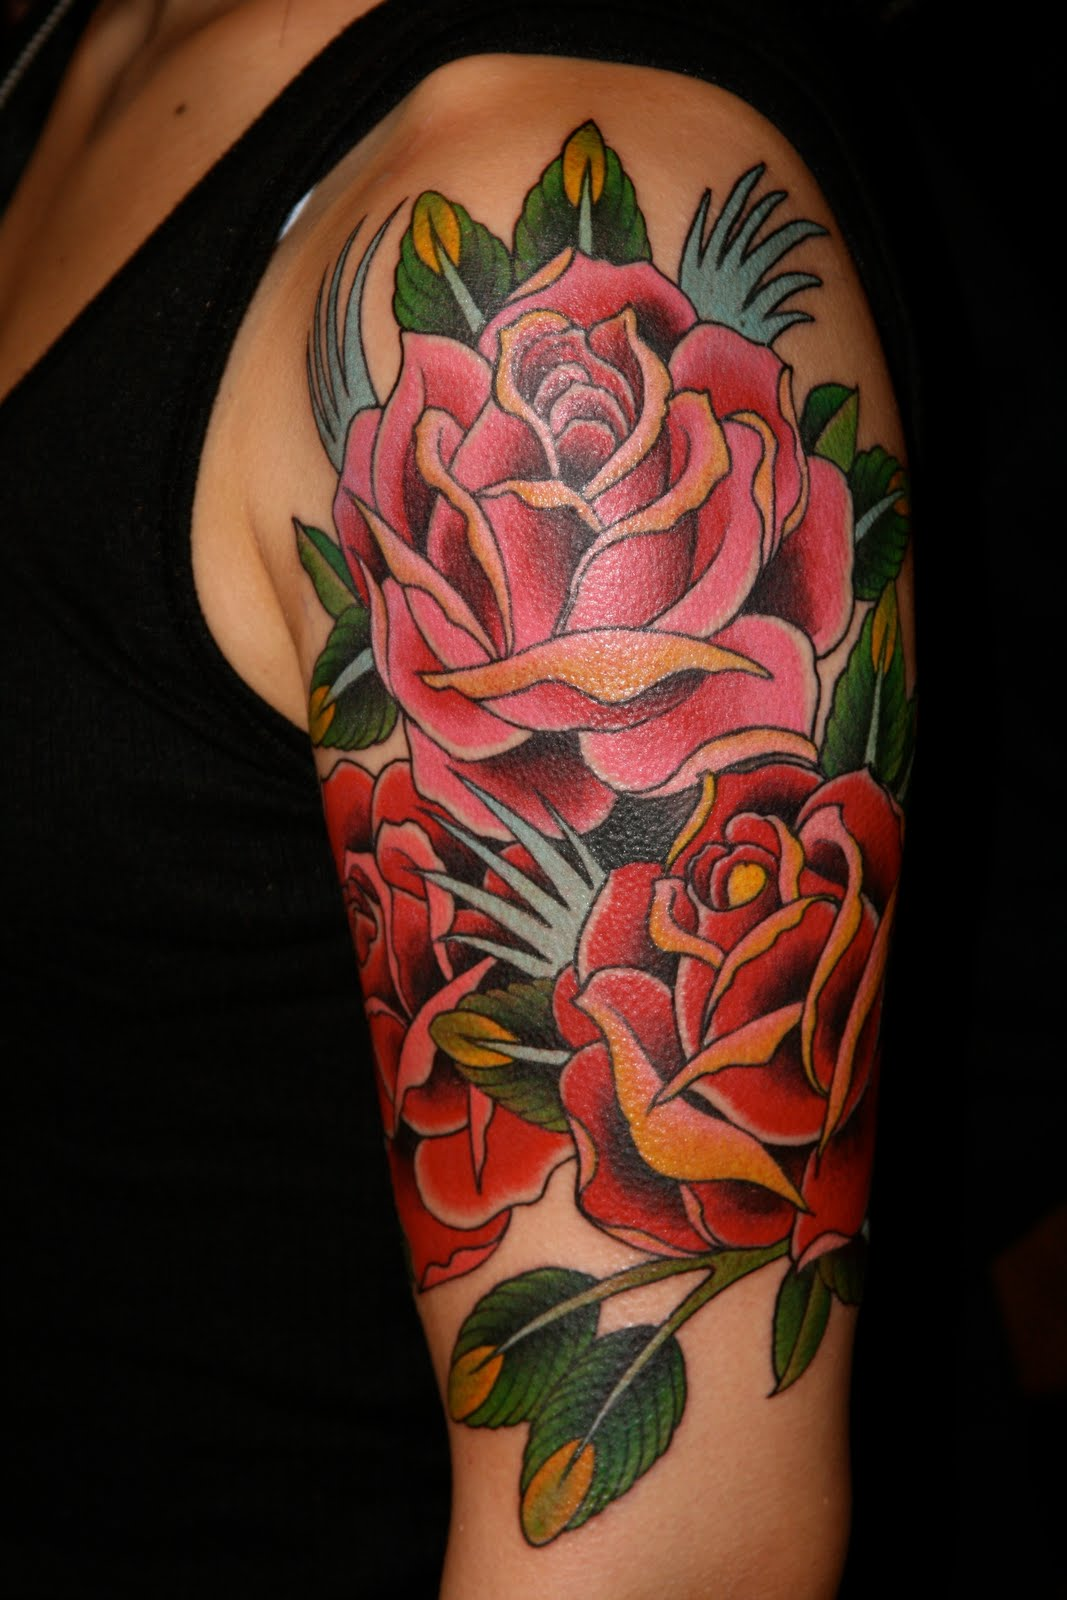 Blackheart Tattoo San Francisco Reapers And Roses From Ideas And Designs